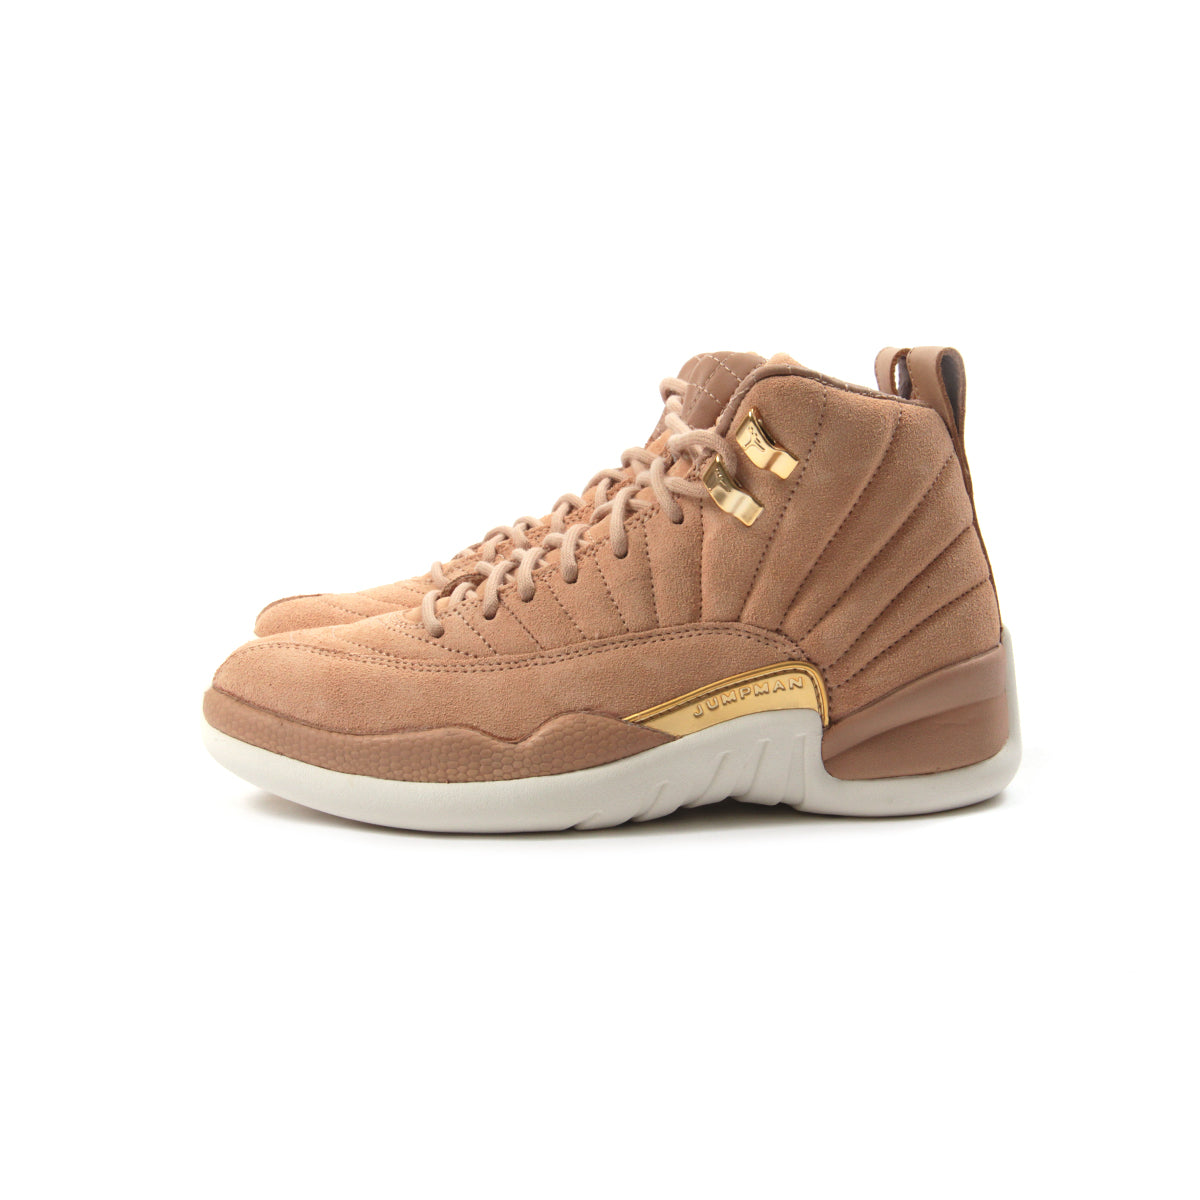 quality design bba23 b1f7d sweden jordan 12 all gold upcoming 03f8f b0a3f